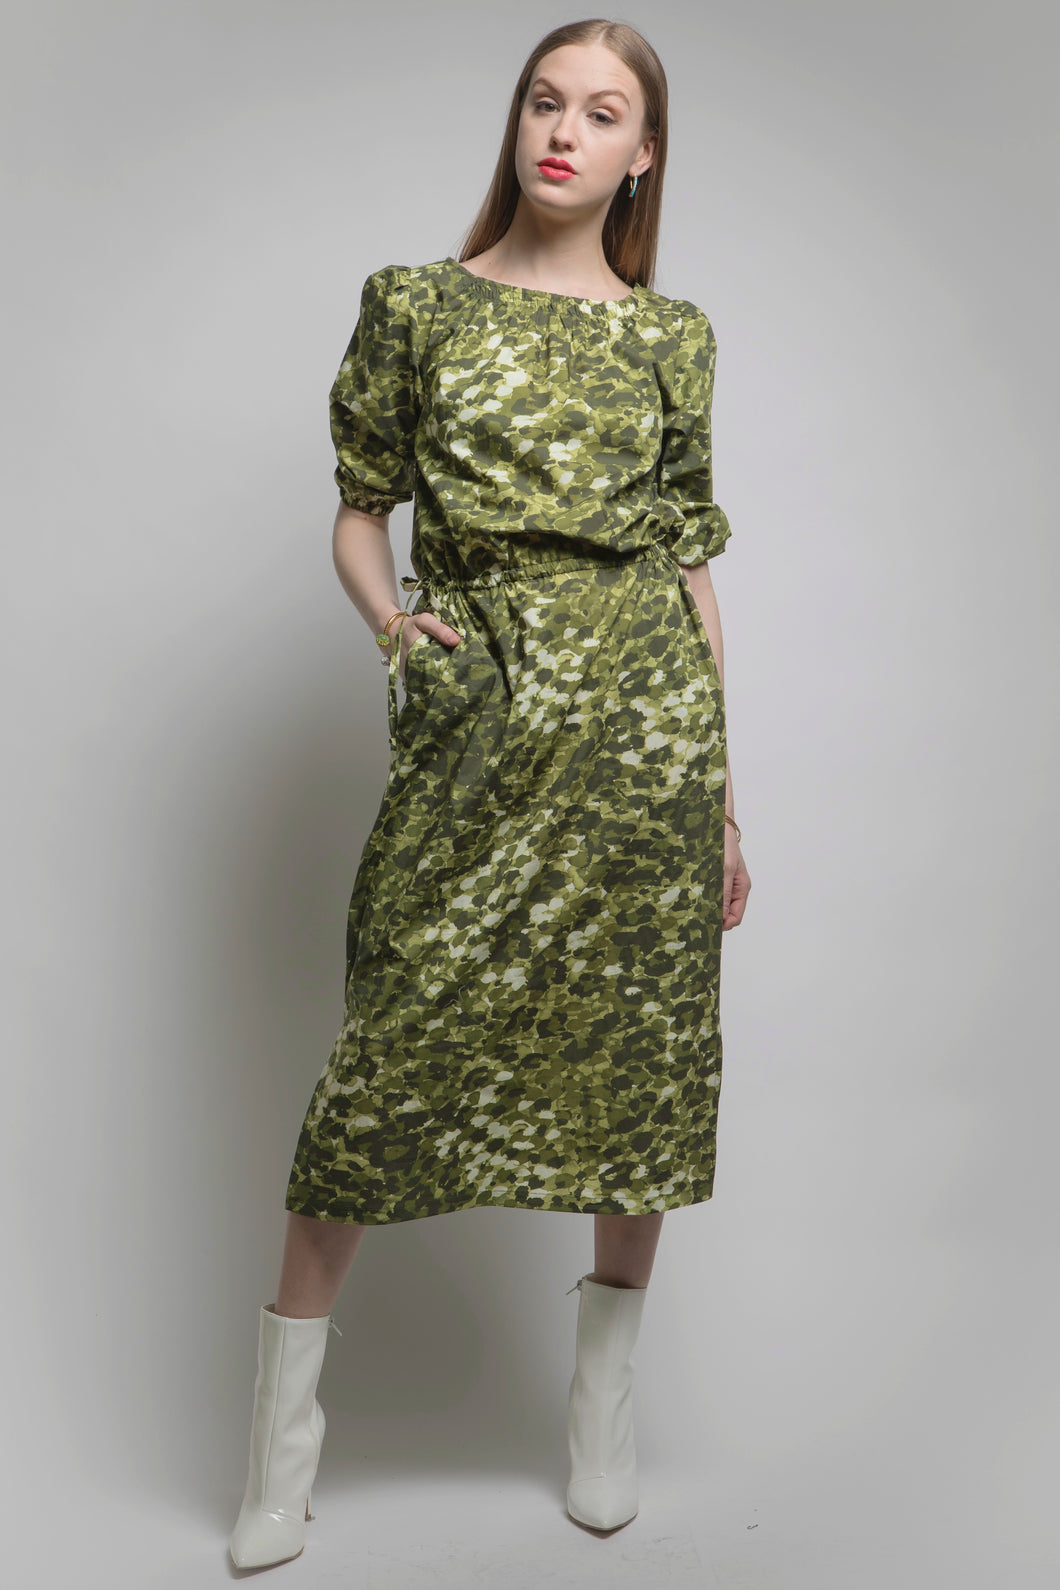 Camo Luxe Green Dress: Made in NYC #175